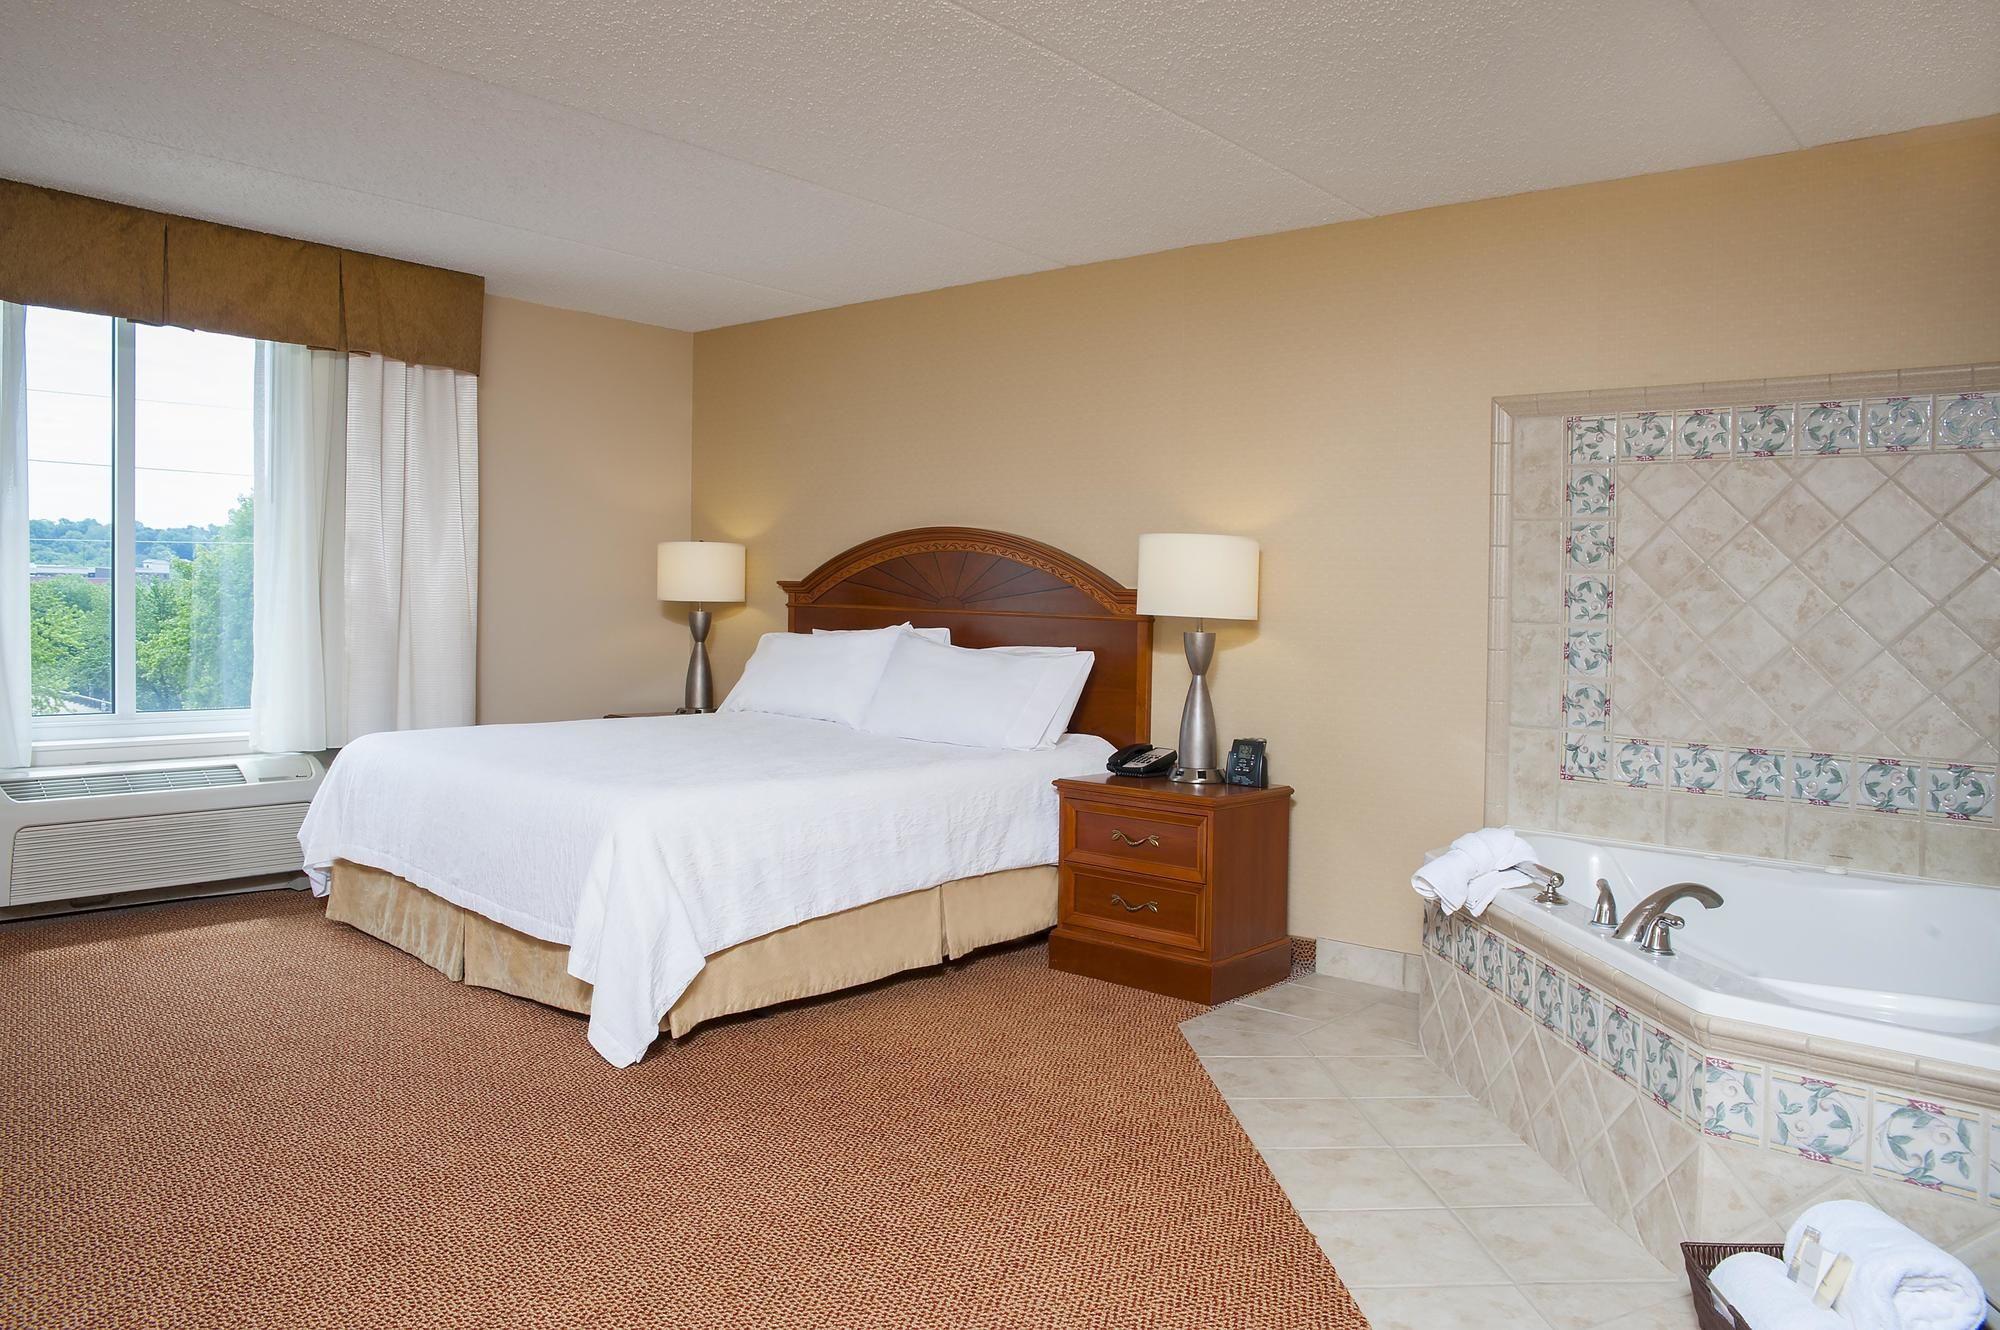 West lafayette hotel coupons for west lafayette indiana for Hilton garden inn west lafayette